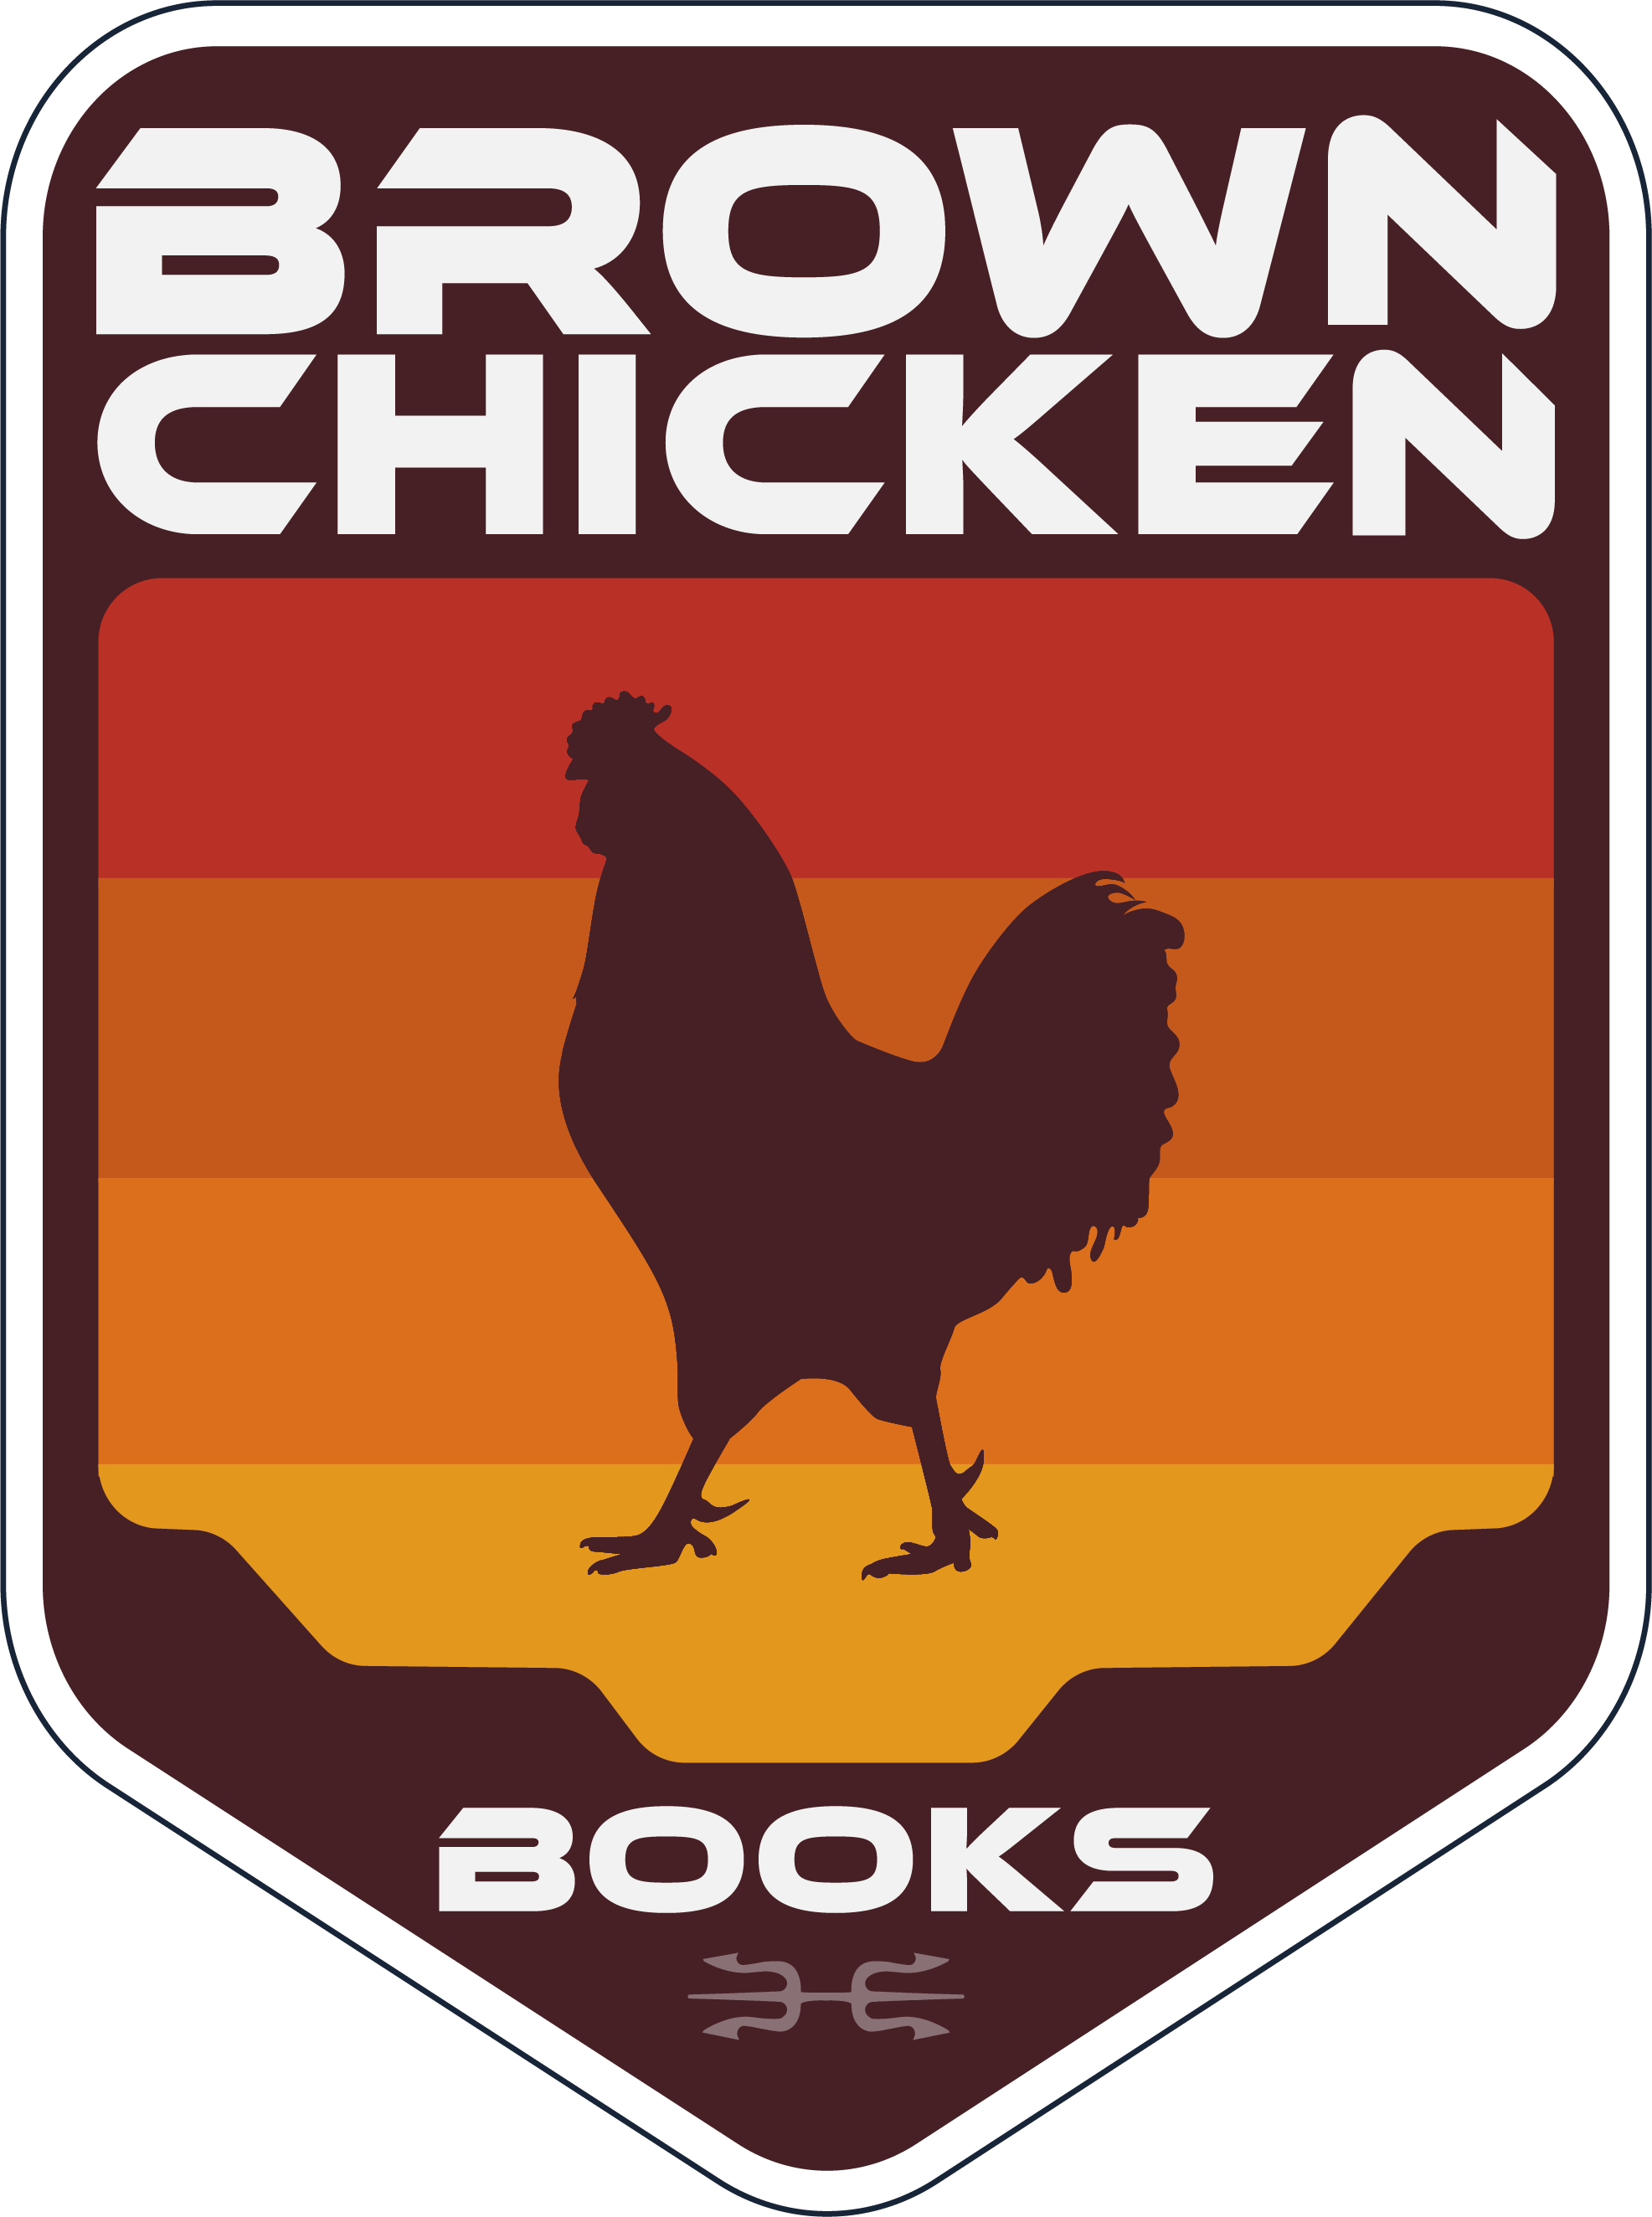 Brown Chicken Books